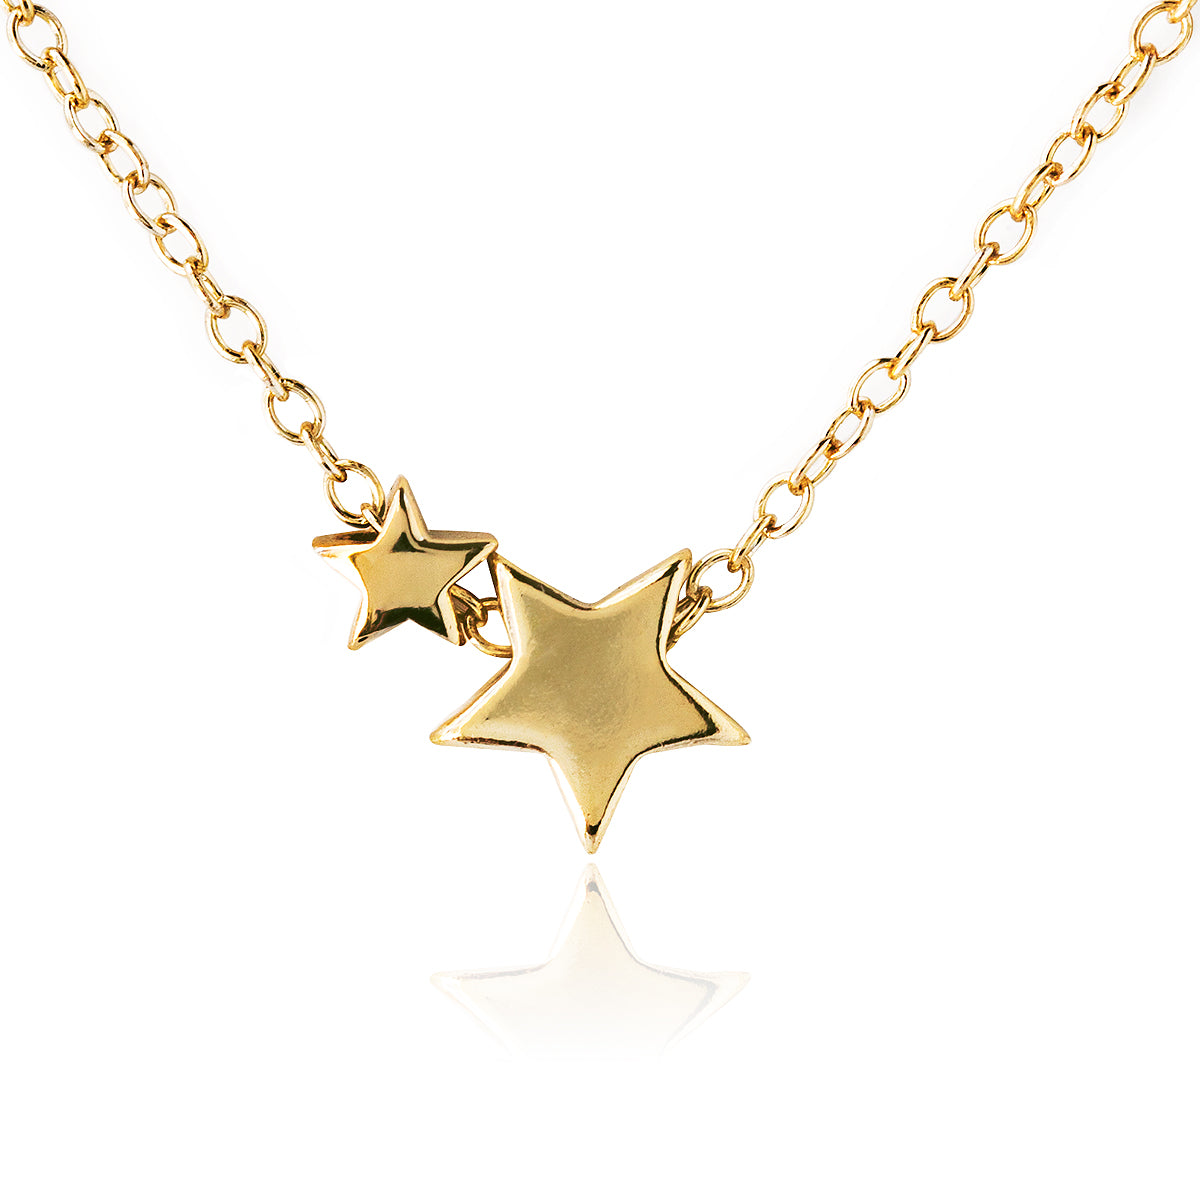 Vega Star Duo Pendant Necklace, Necklaces - AMY O. Jewelry